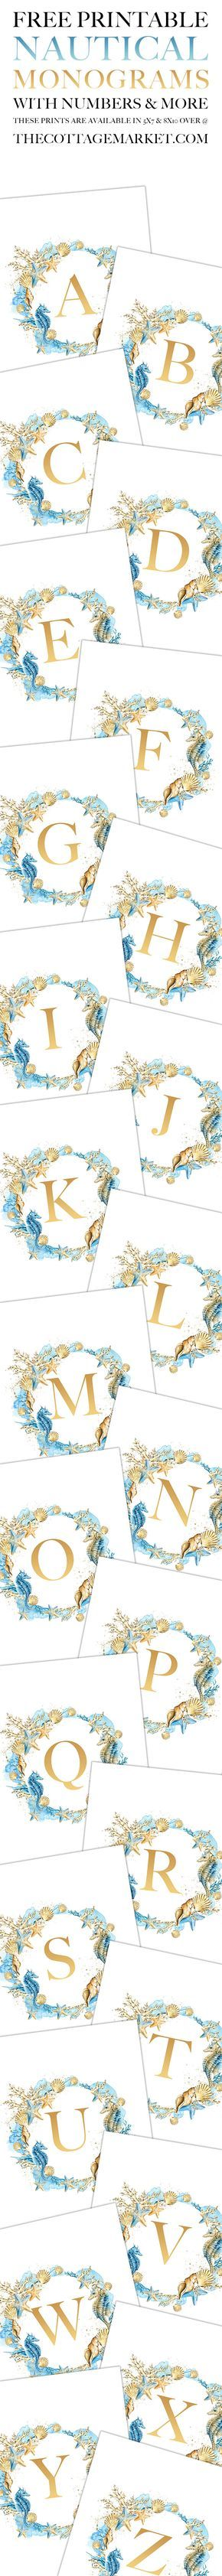 Free Printable Nautical Monograms and More